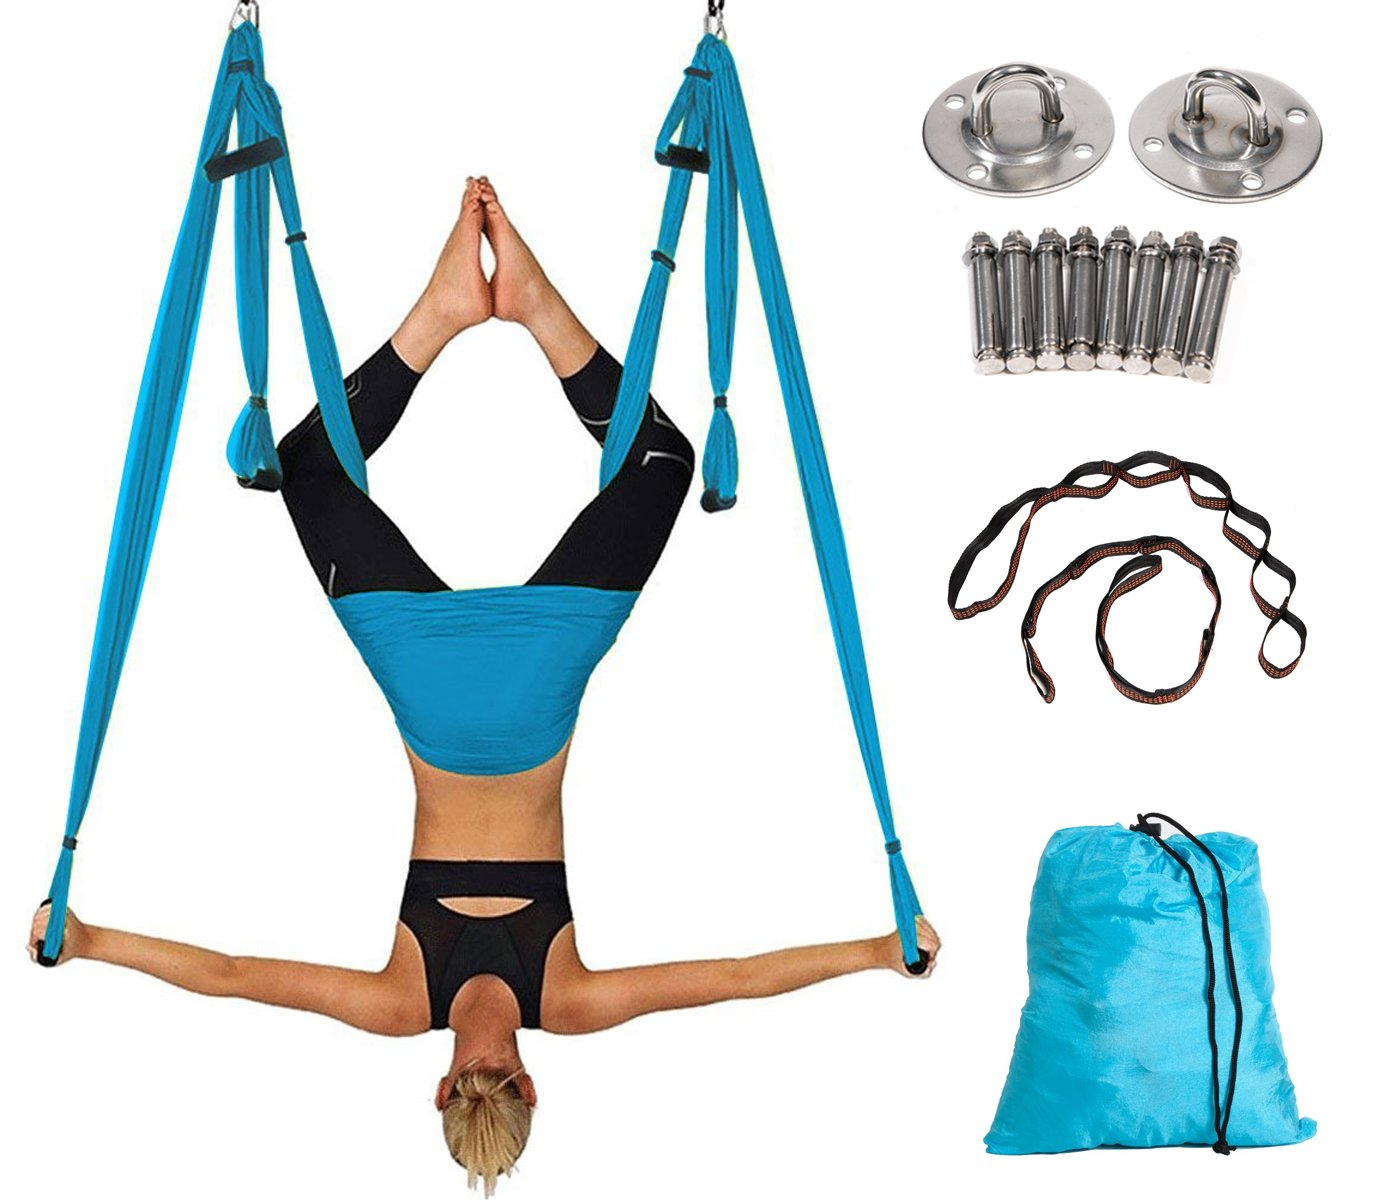 Aerial Yoga Swing Yoga Hammock Kit for Antigravity Exercise with Adjustable Handles Extension Straps (Blue)